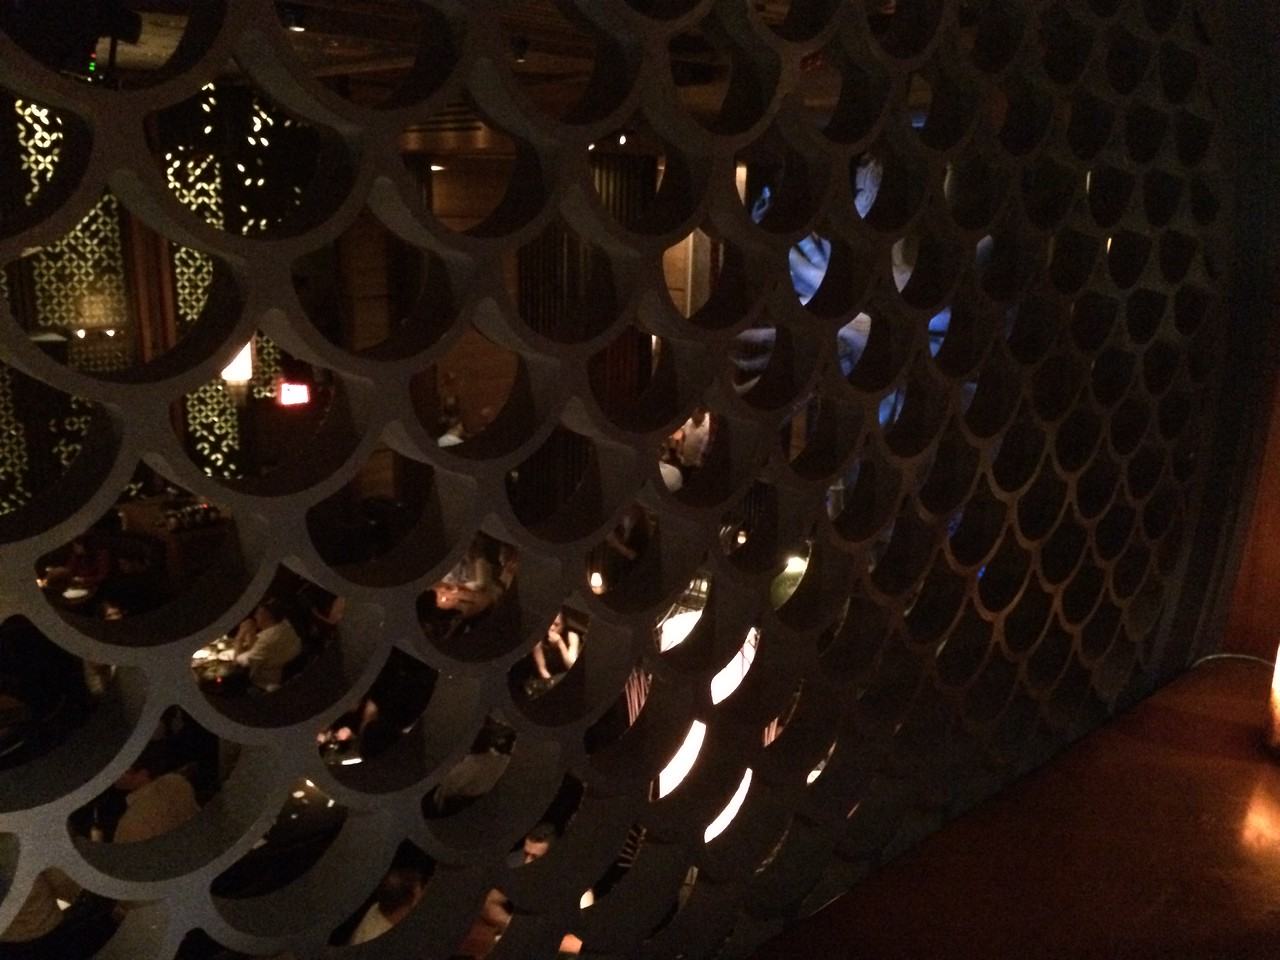 From the long hallway, looking down at the dining scene/buddha